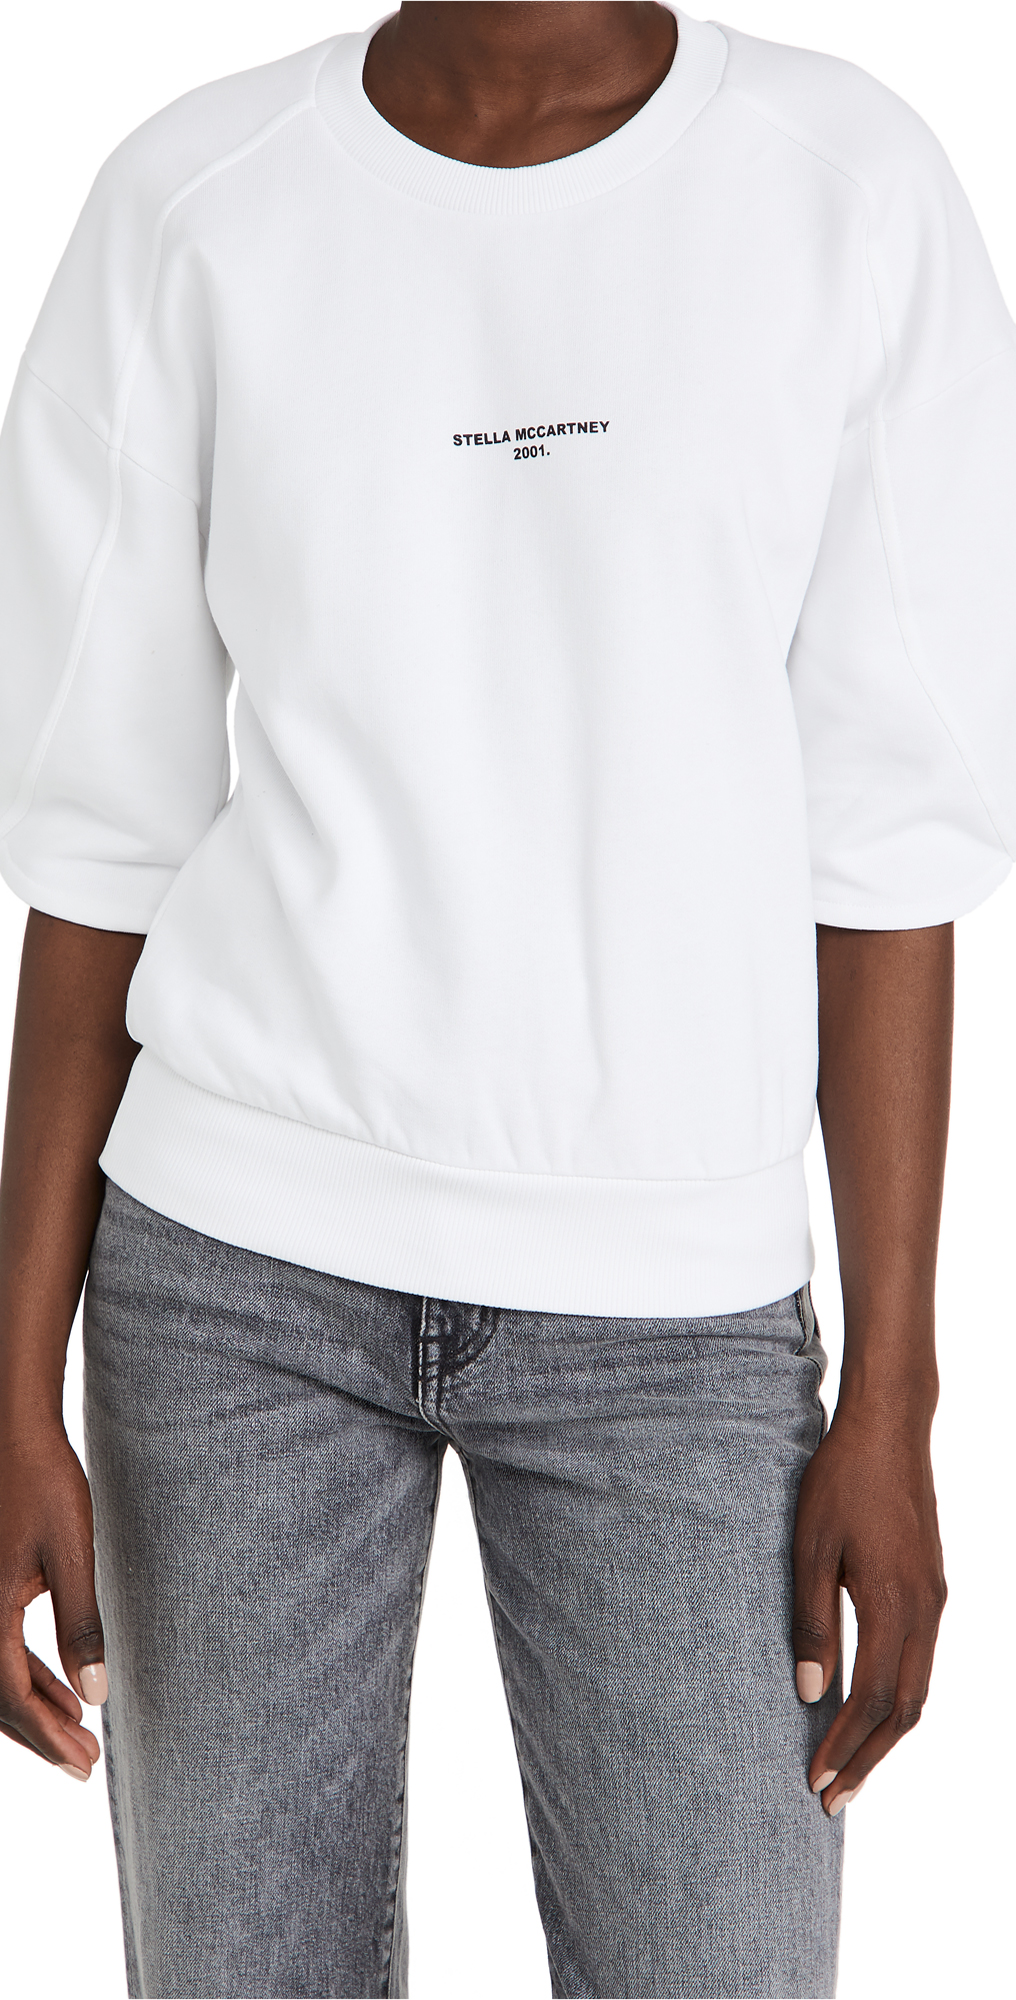 Stella Mccartney Stella Logo 2001 Sweatshirt In White